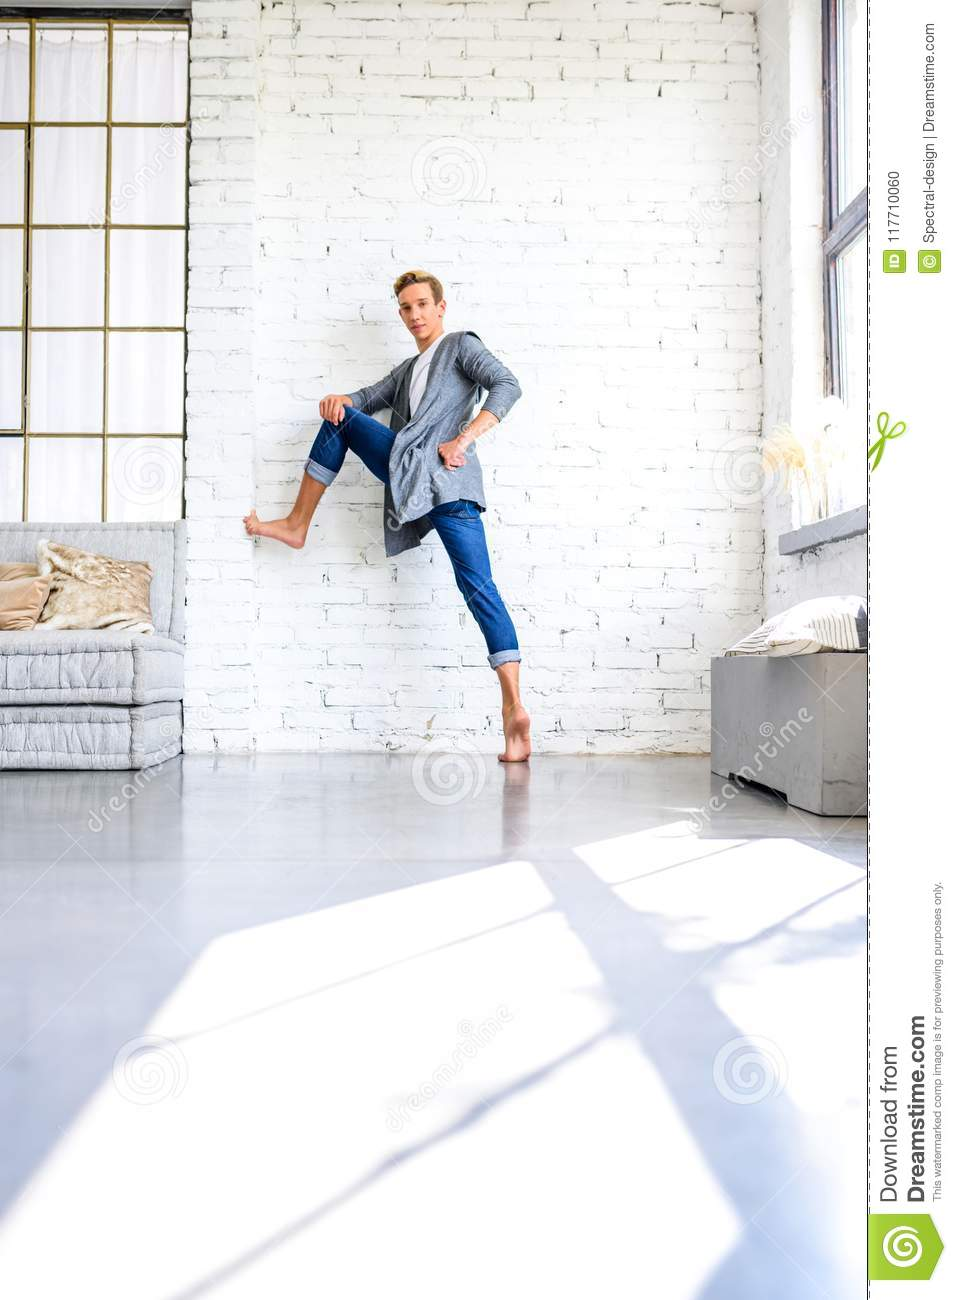 A handsome young male Ballet dancer practicing in a Loft style A